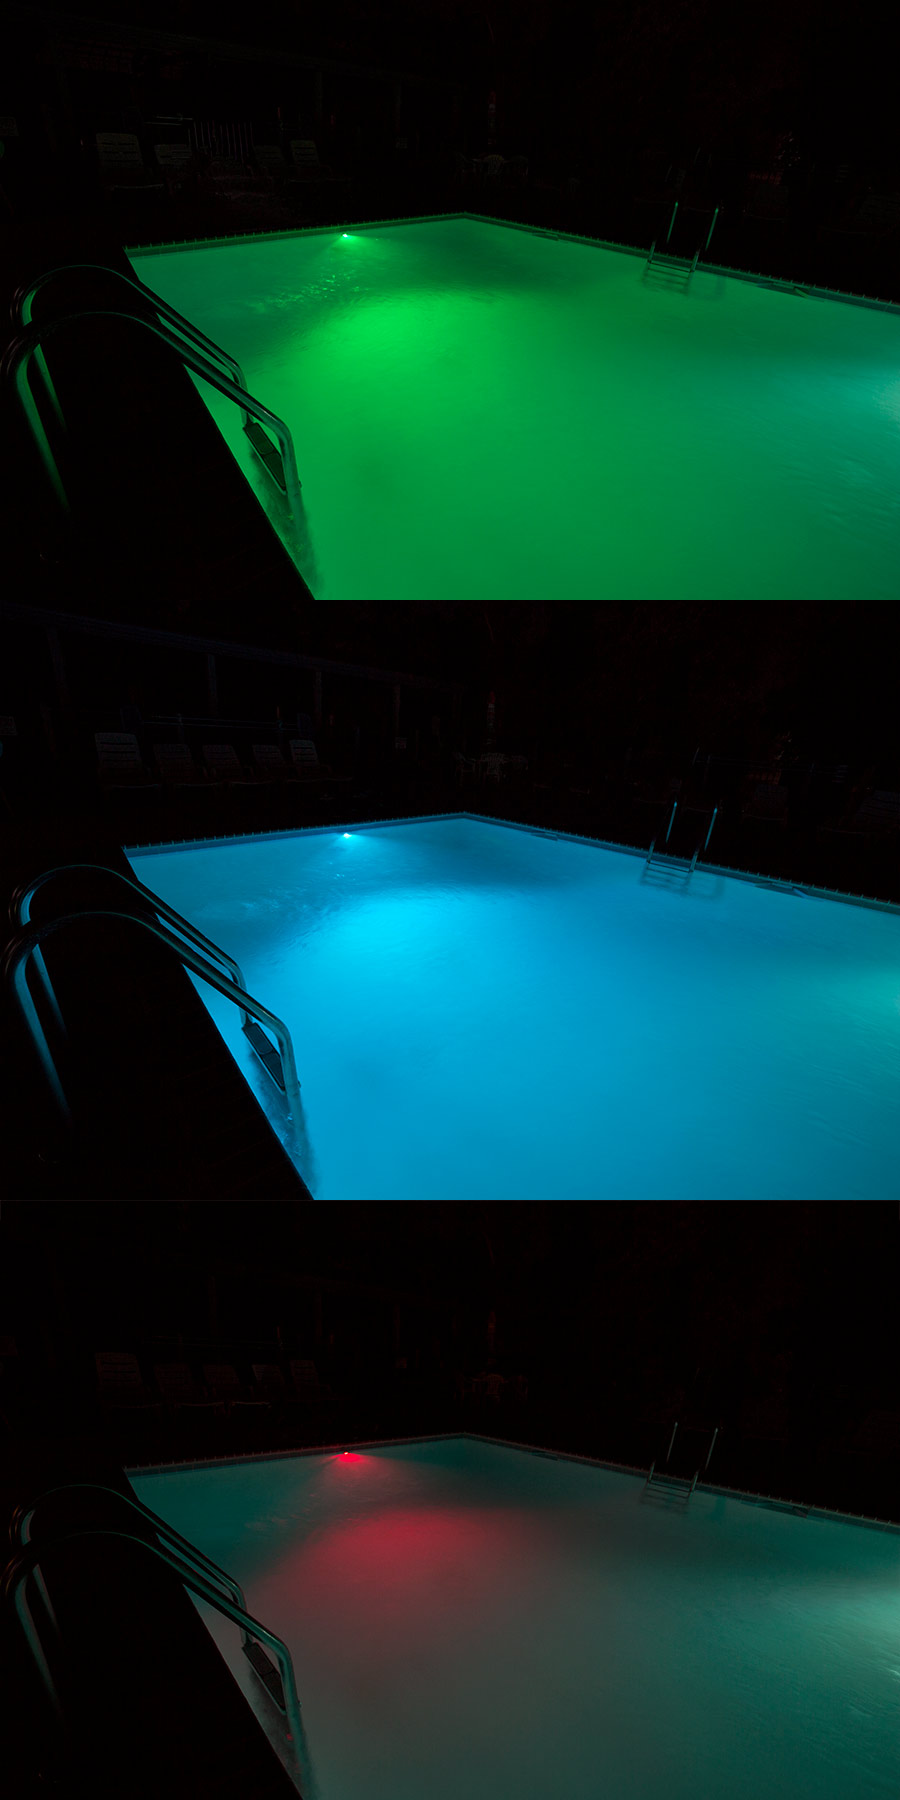 RGB LED Underwater Pool Lights and Fountain/Pond Lights - Dual Array ...